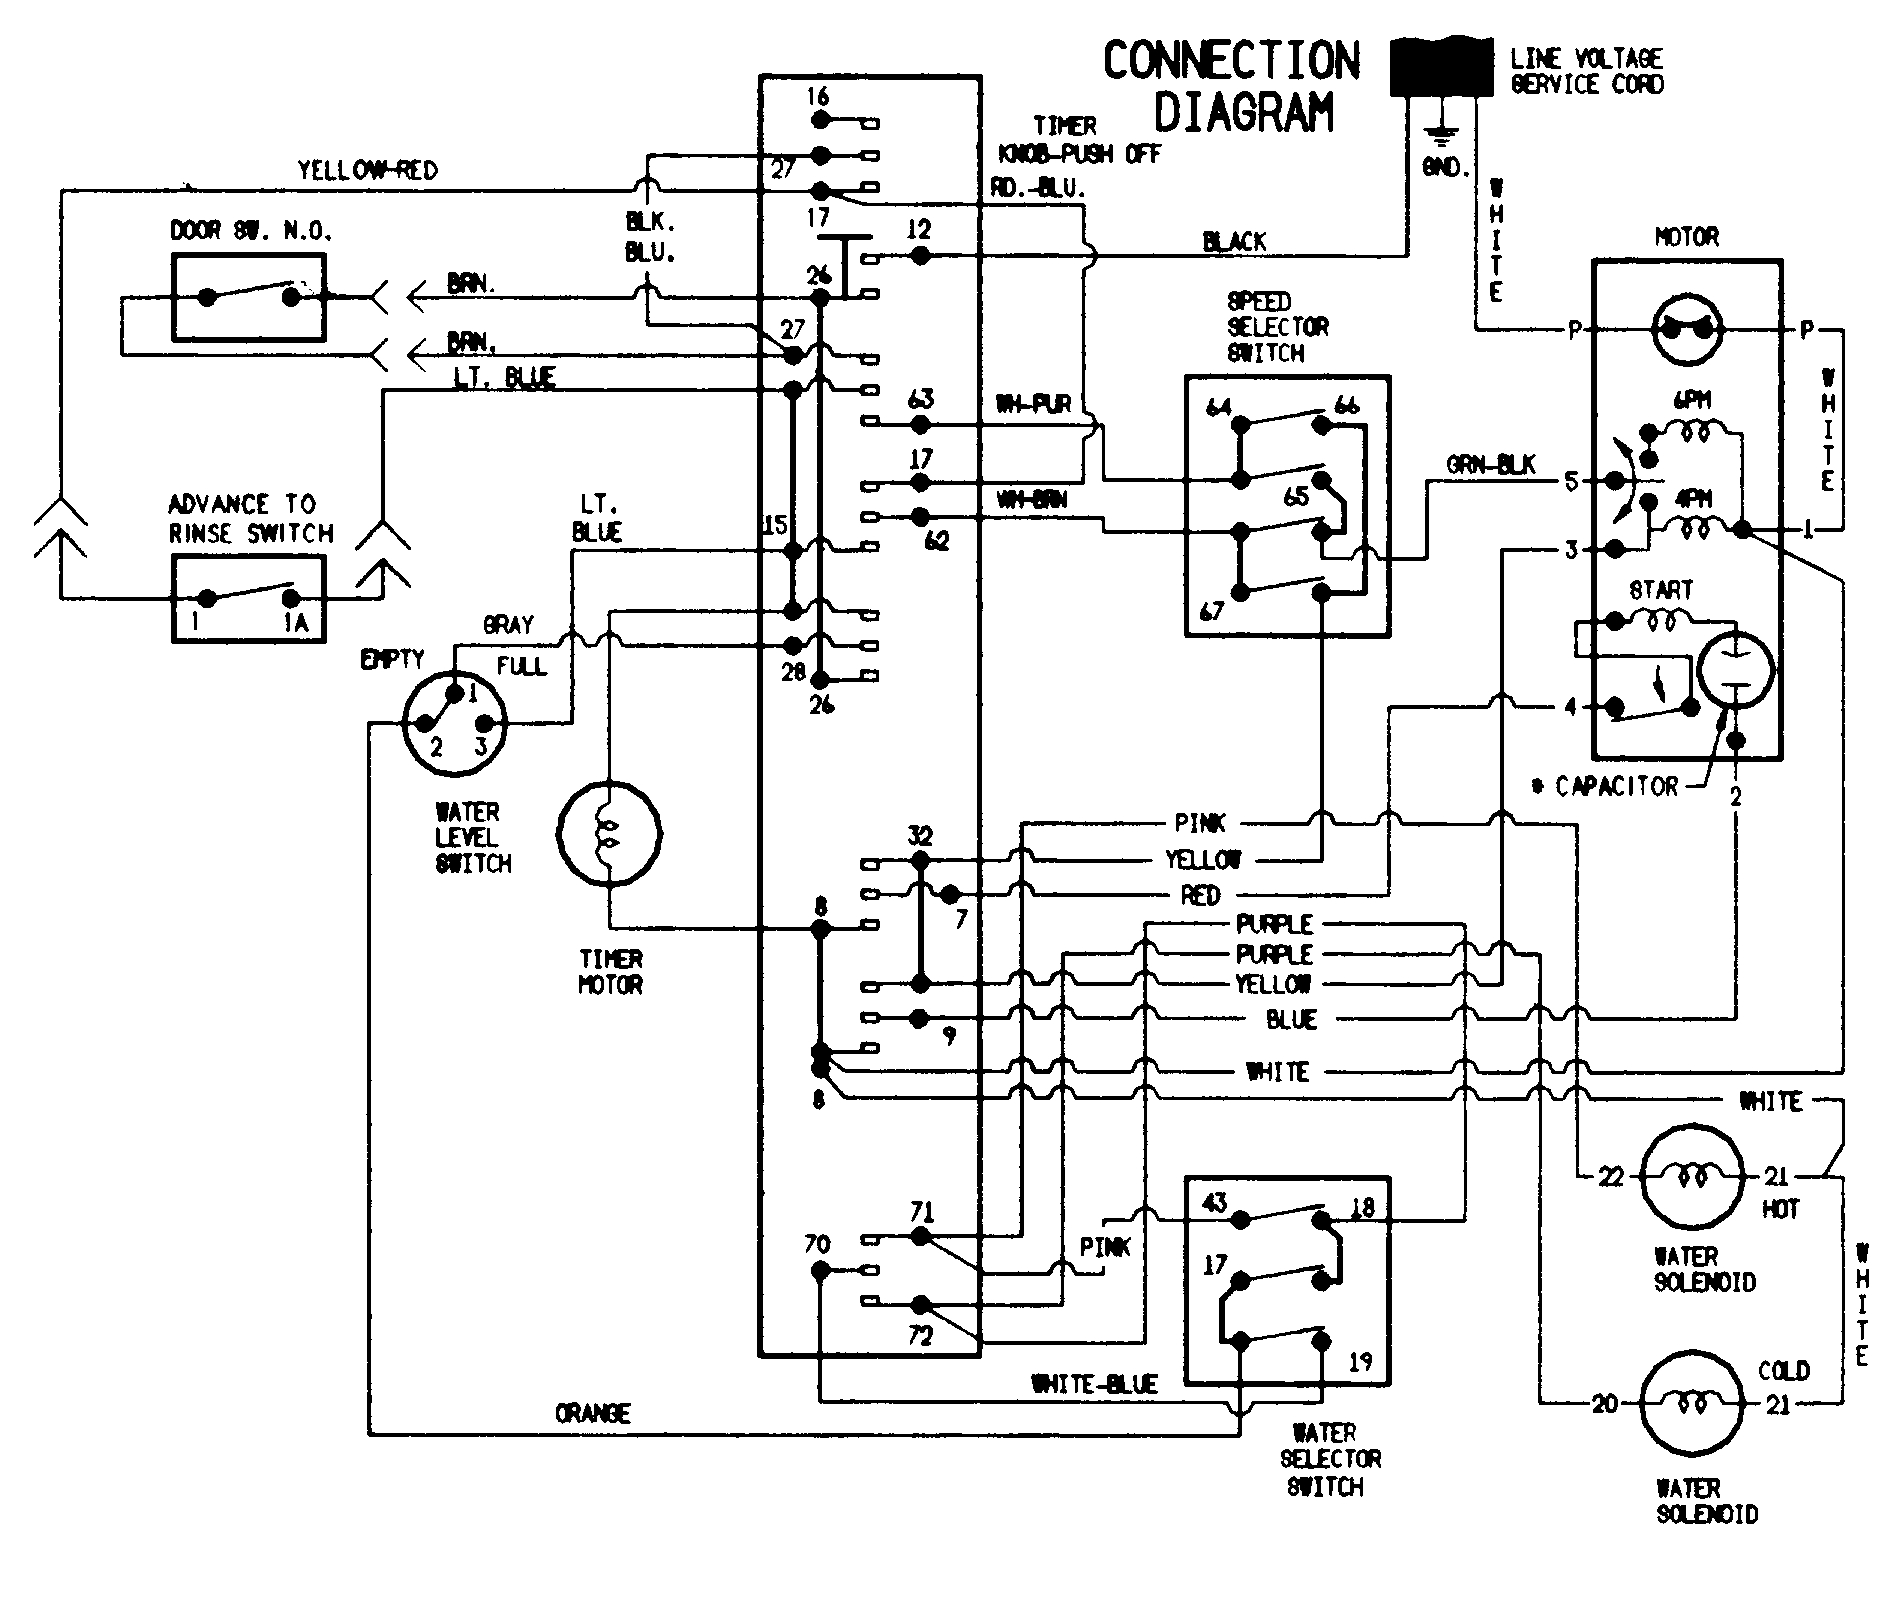 washing machine wiring diagram and schematics Download-Maytag Washer Wiring Diagram Luxury Maytag Washer Parts Model Pav2000aww 4-g